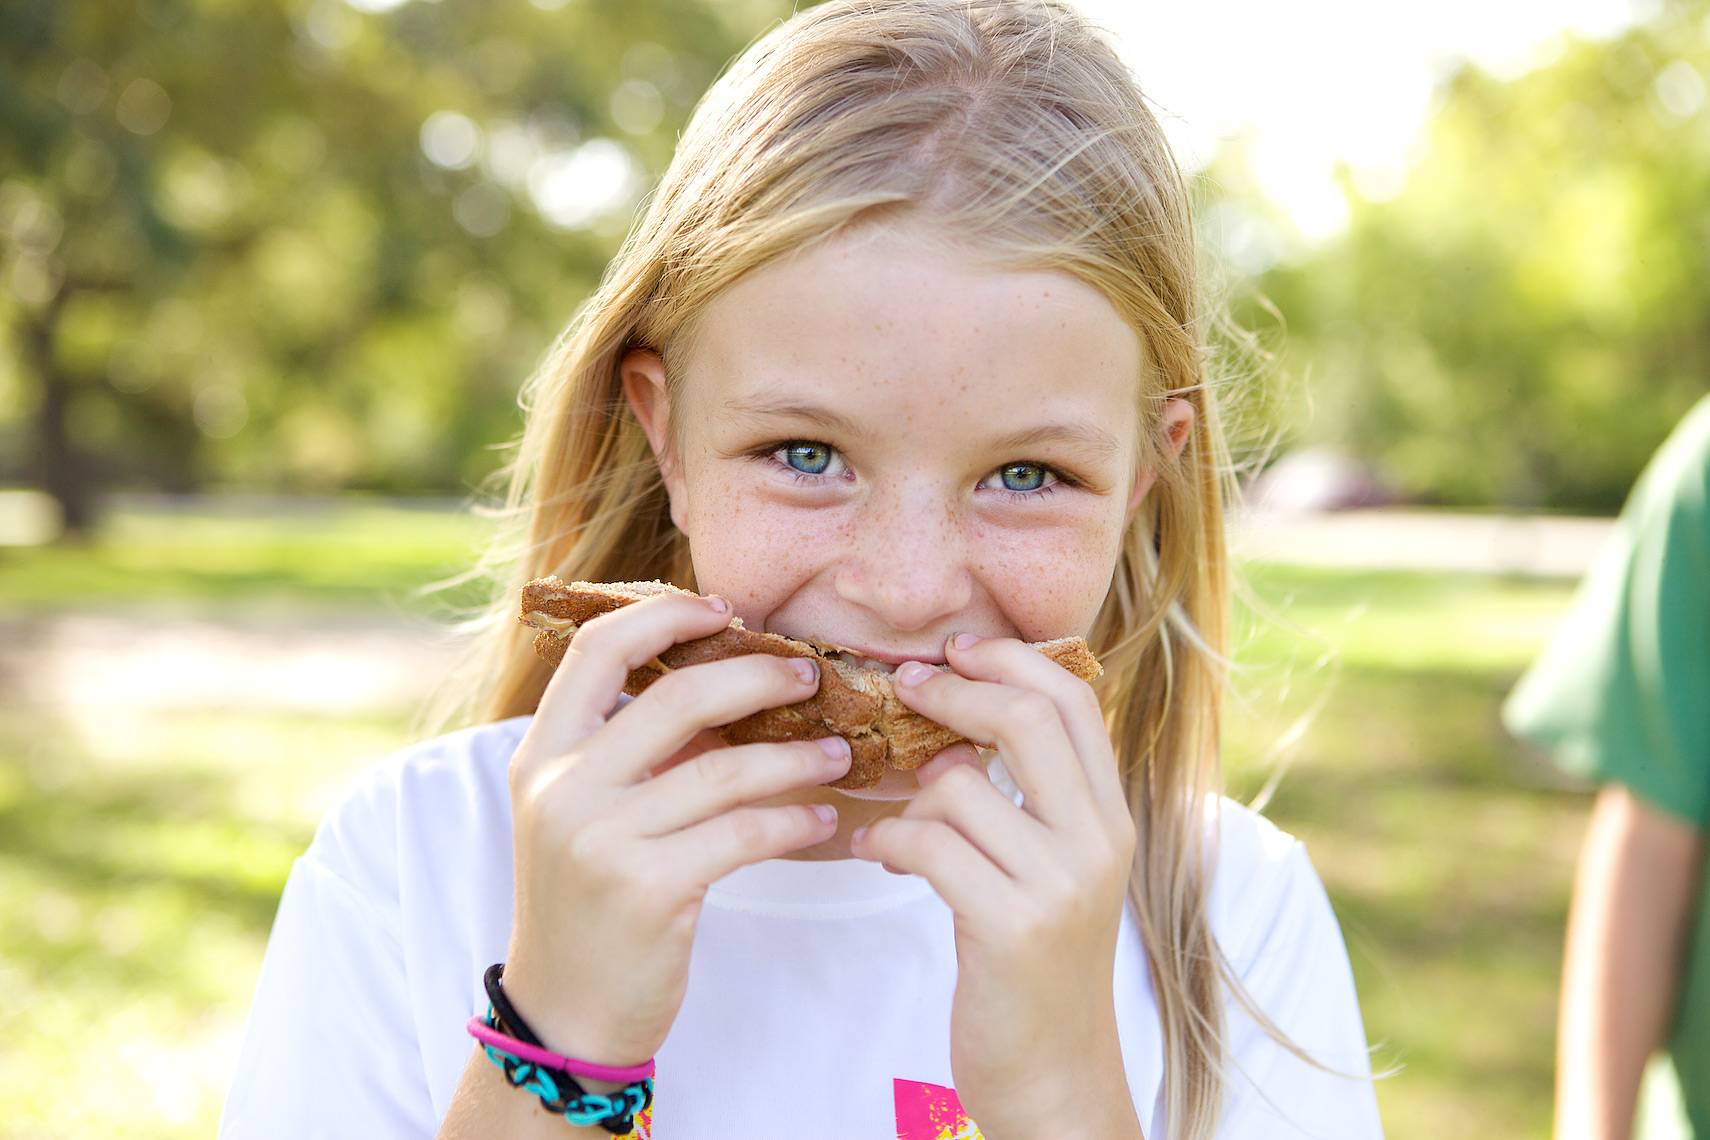 Young girl eating sandwich, close view_2533_Robert-Holland.jpg